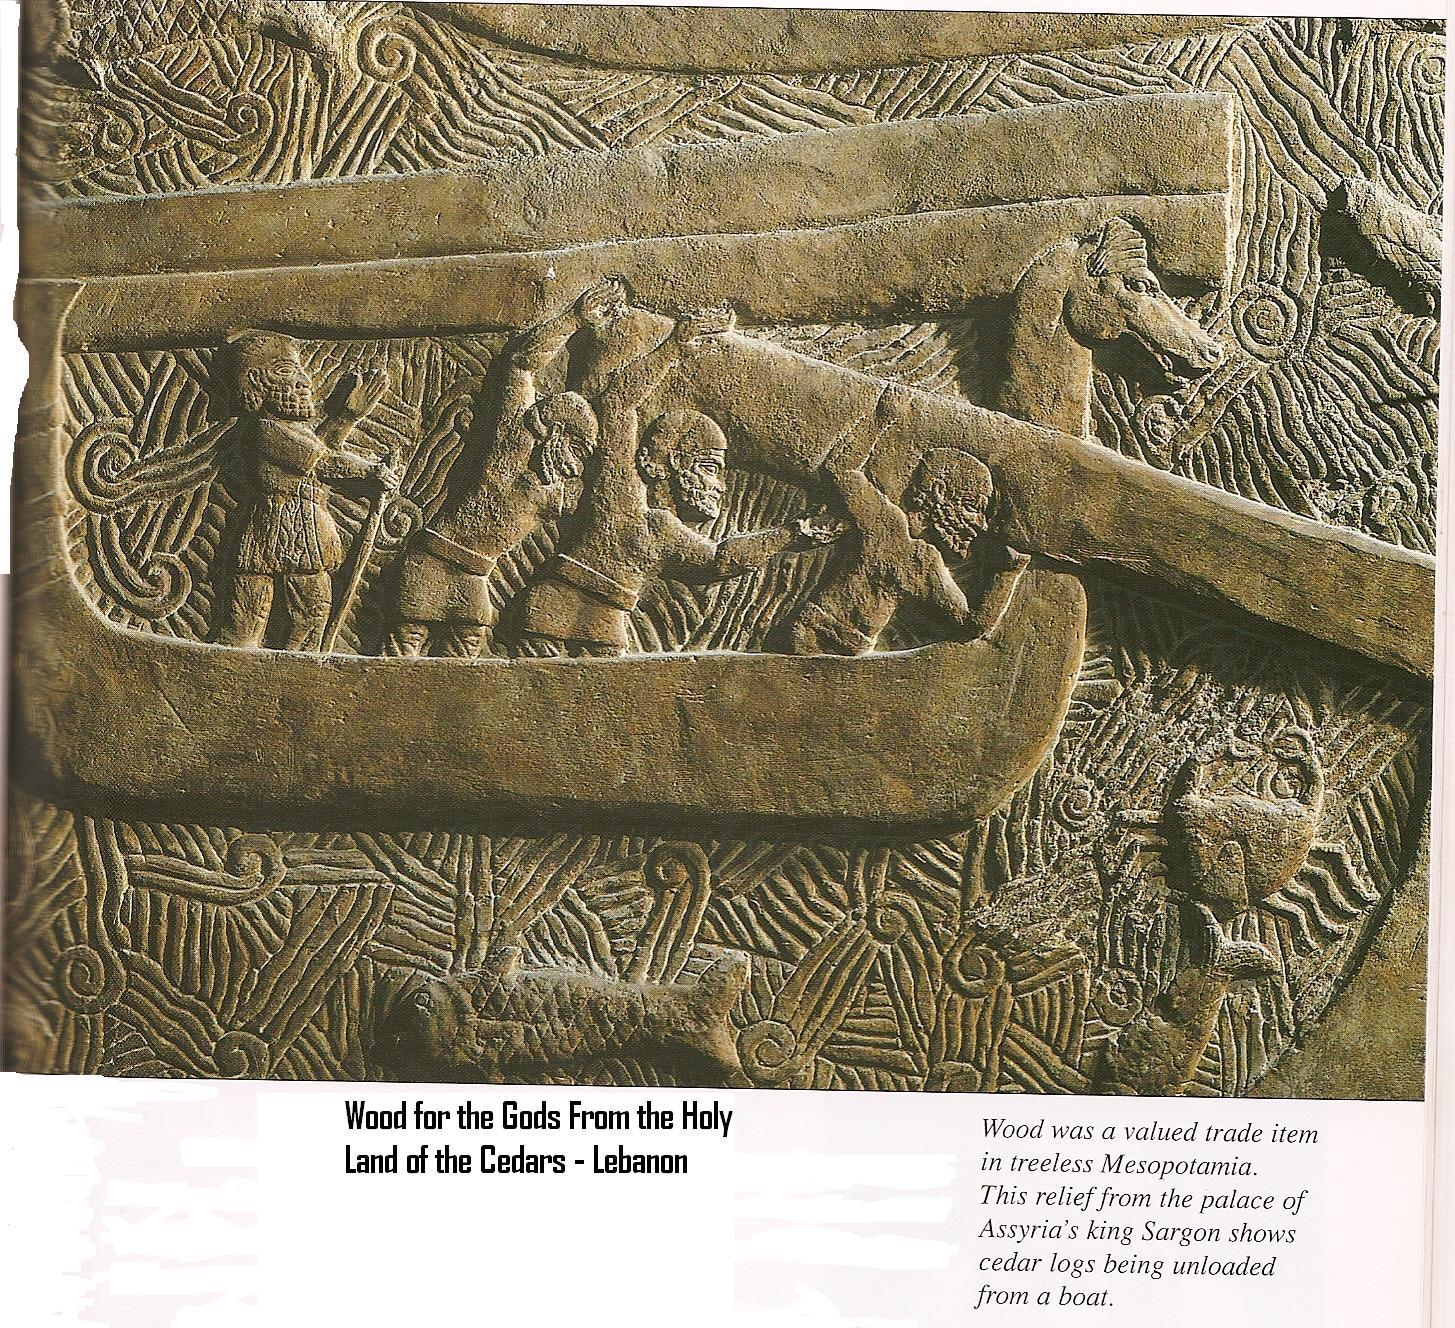 19h - Assyrian artefact of Sargon II, the giant aliens coveted cedar wood, shipped to the temples - houses for repairs, the alien gods loved the cedar aroma, & made oils of it, the cedar wood was taken from the mountains of Lebanon, the place of Enlil's Holy Cedars, the place of Enlil's beast Humbaba, SEE GILGAMESH TEXTS ON ANU'S PAGE UNDER URUK KINGS